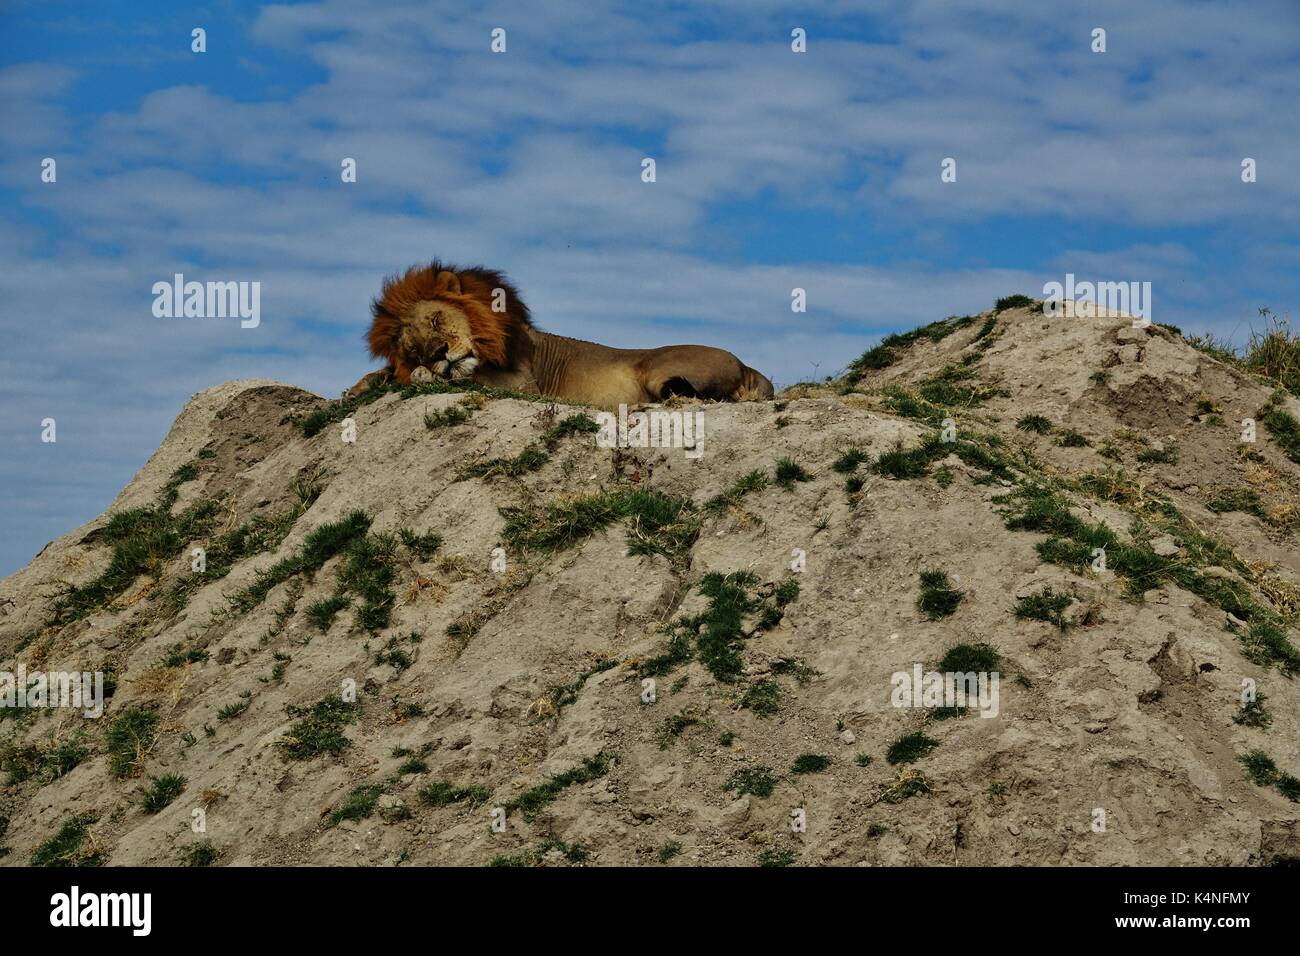 sleeping lion photos sleeping lion images alamy. Black Bedroom Furniture Sets. Home Design Ideas